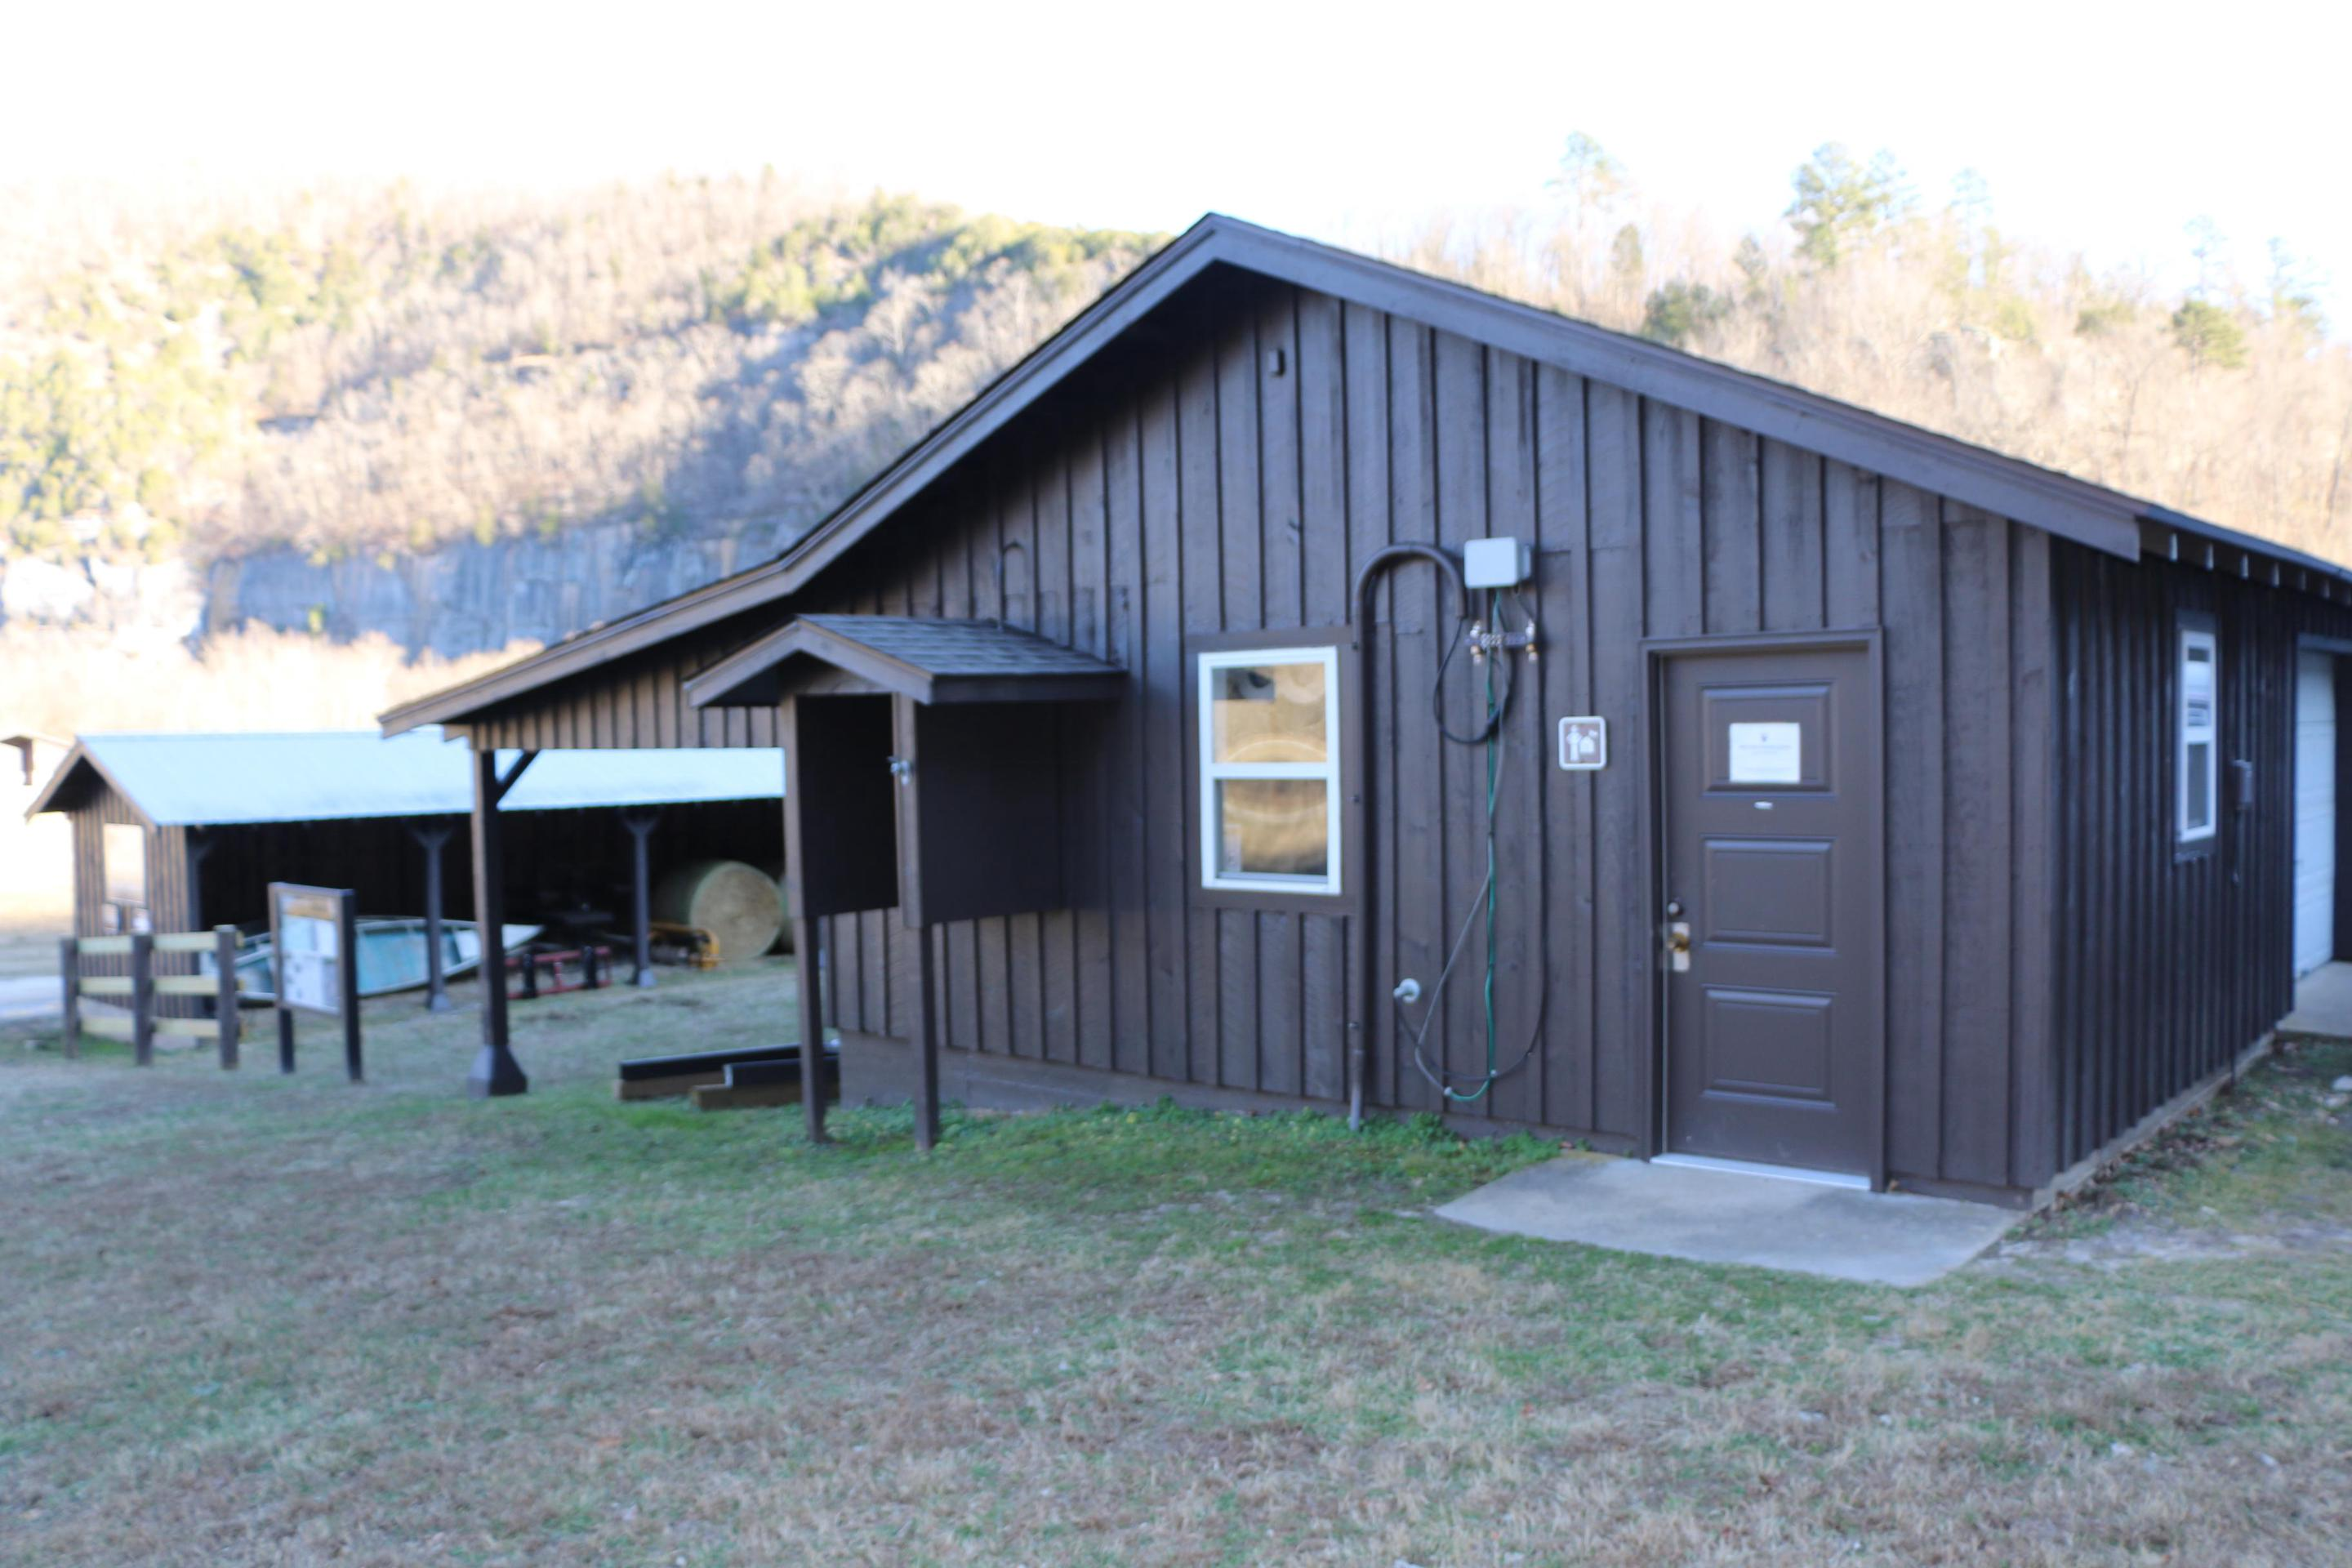 Steel Creek Ranger StationVisitors to the Upper District can stop by the Steel Creek Ranger Station for information.